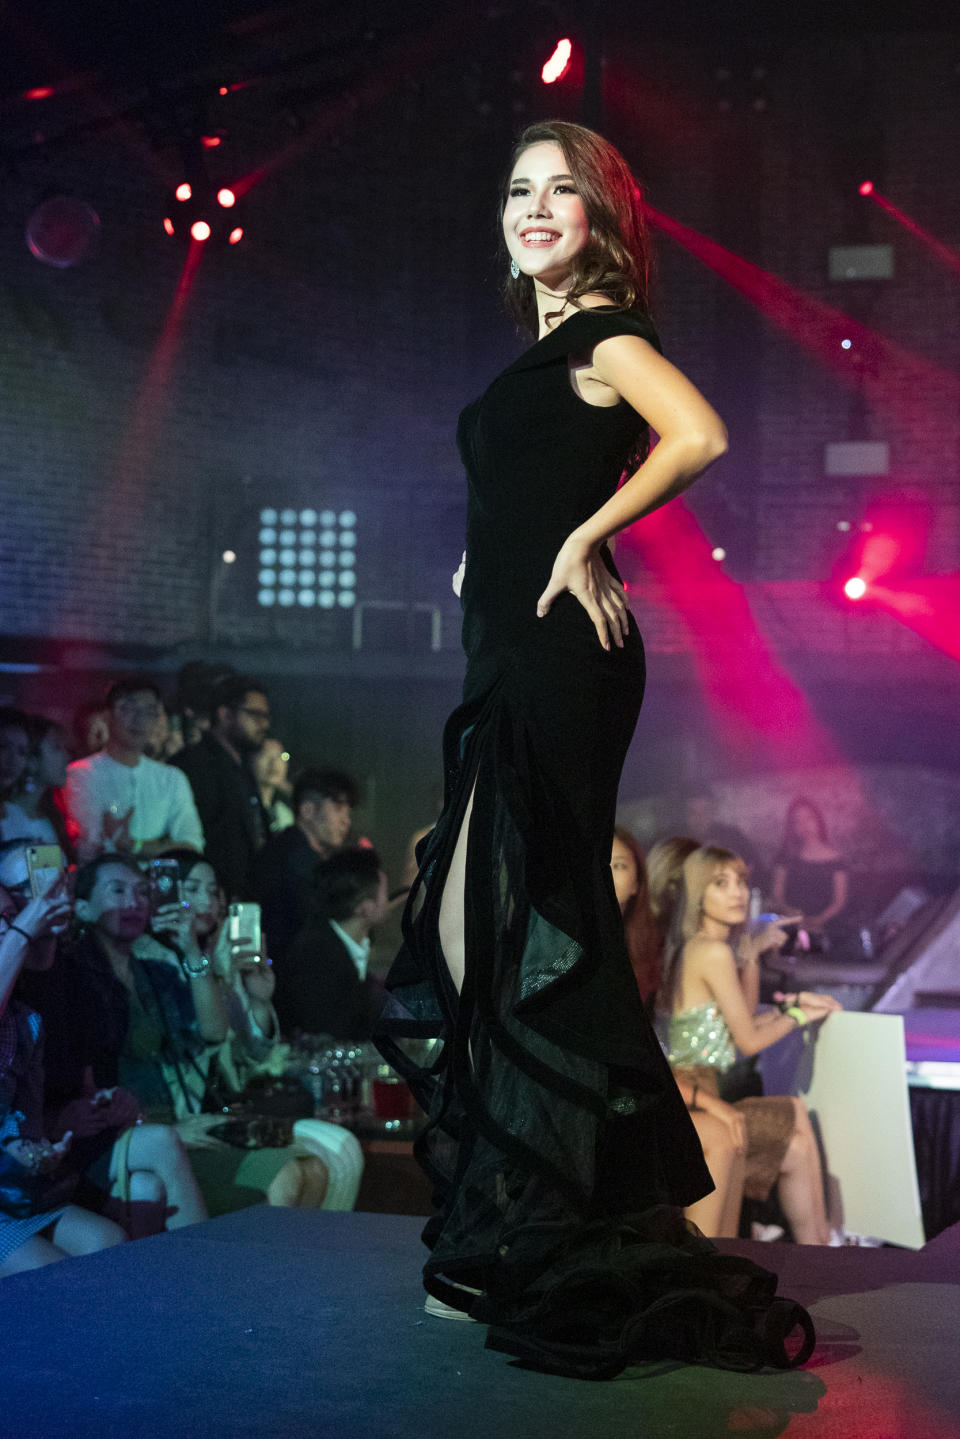 Annika Xue Sager competing in the evening gown segment during the 2019 Miss Universe Singapore at Zouk.